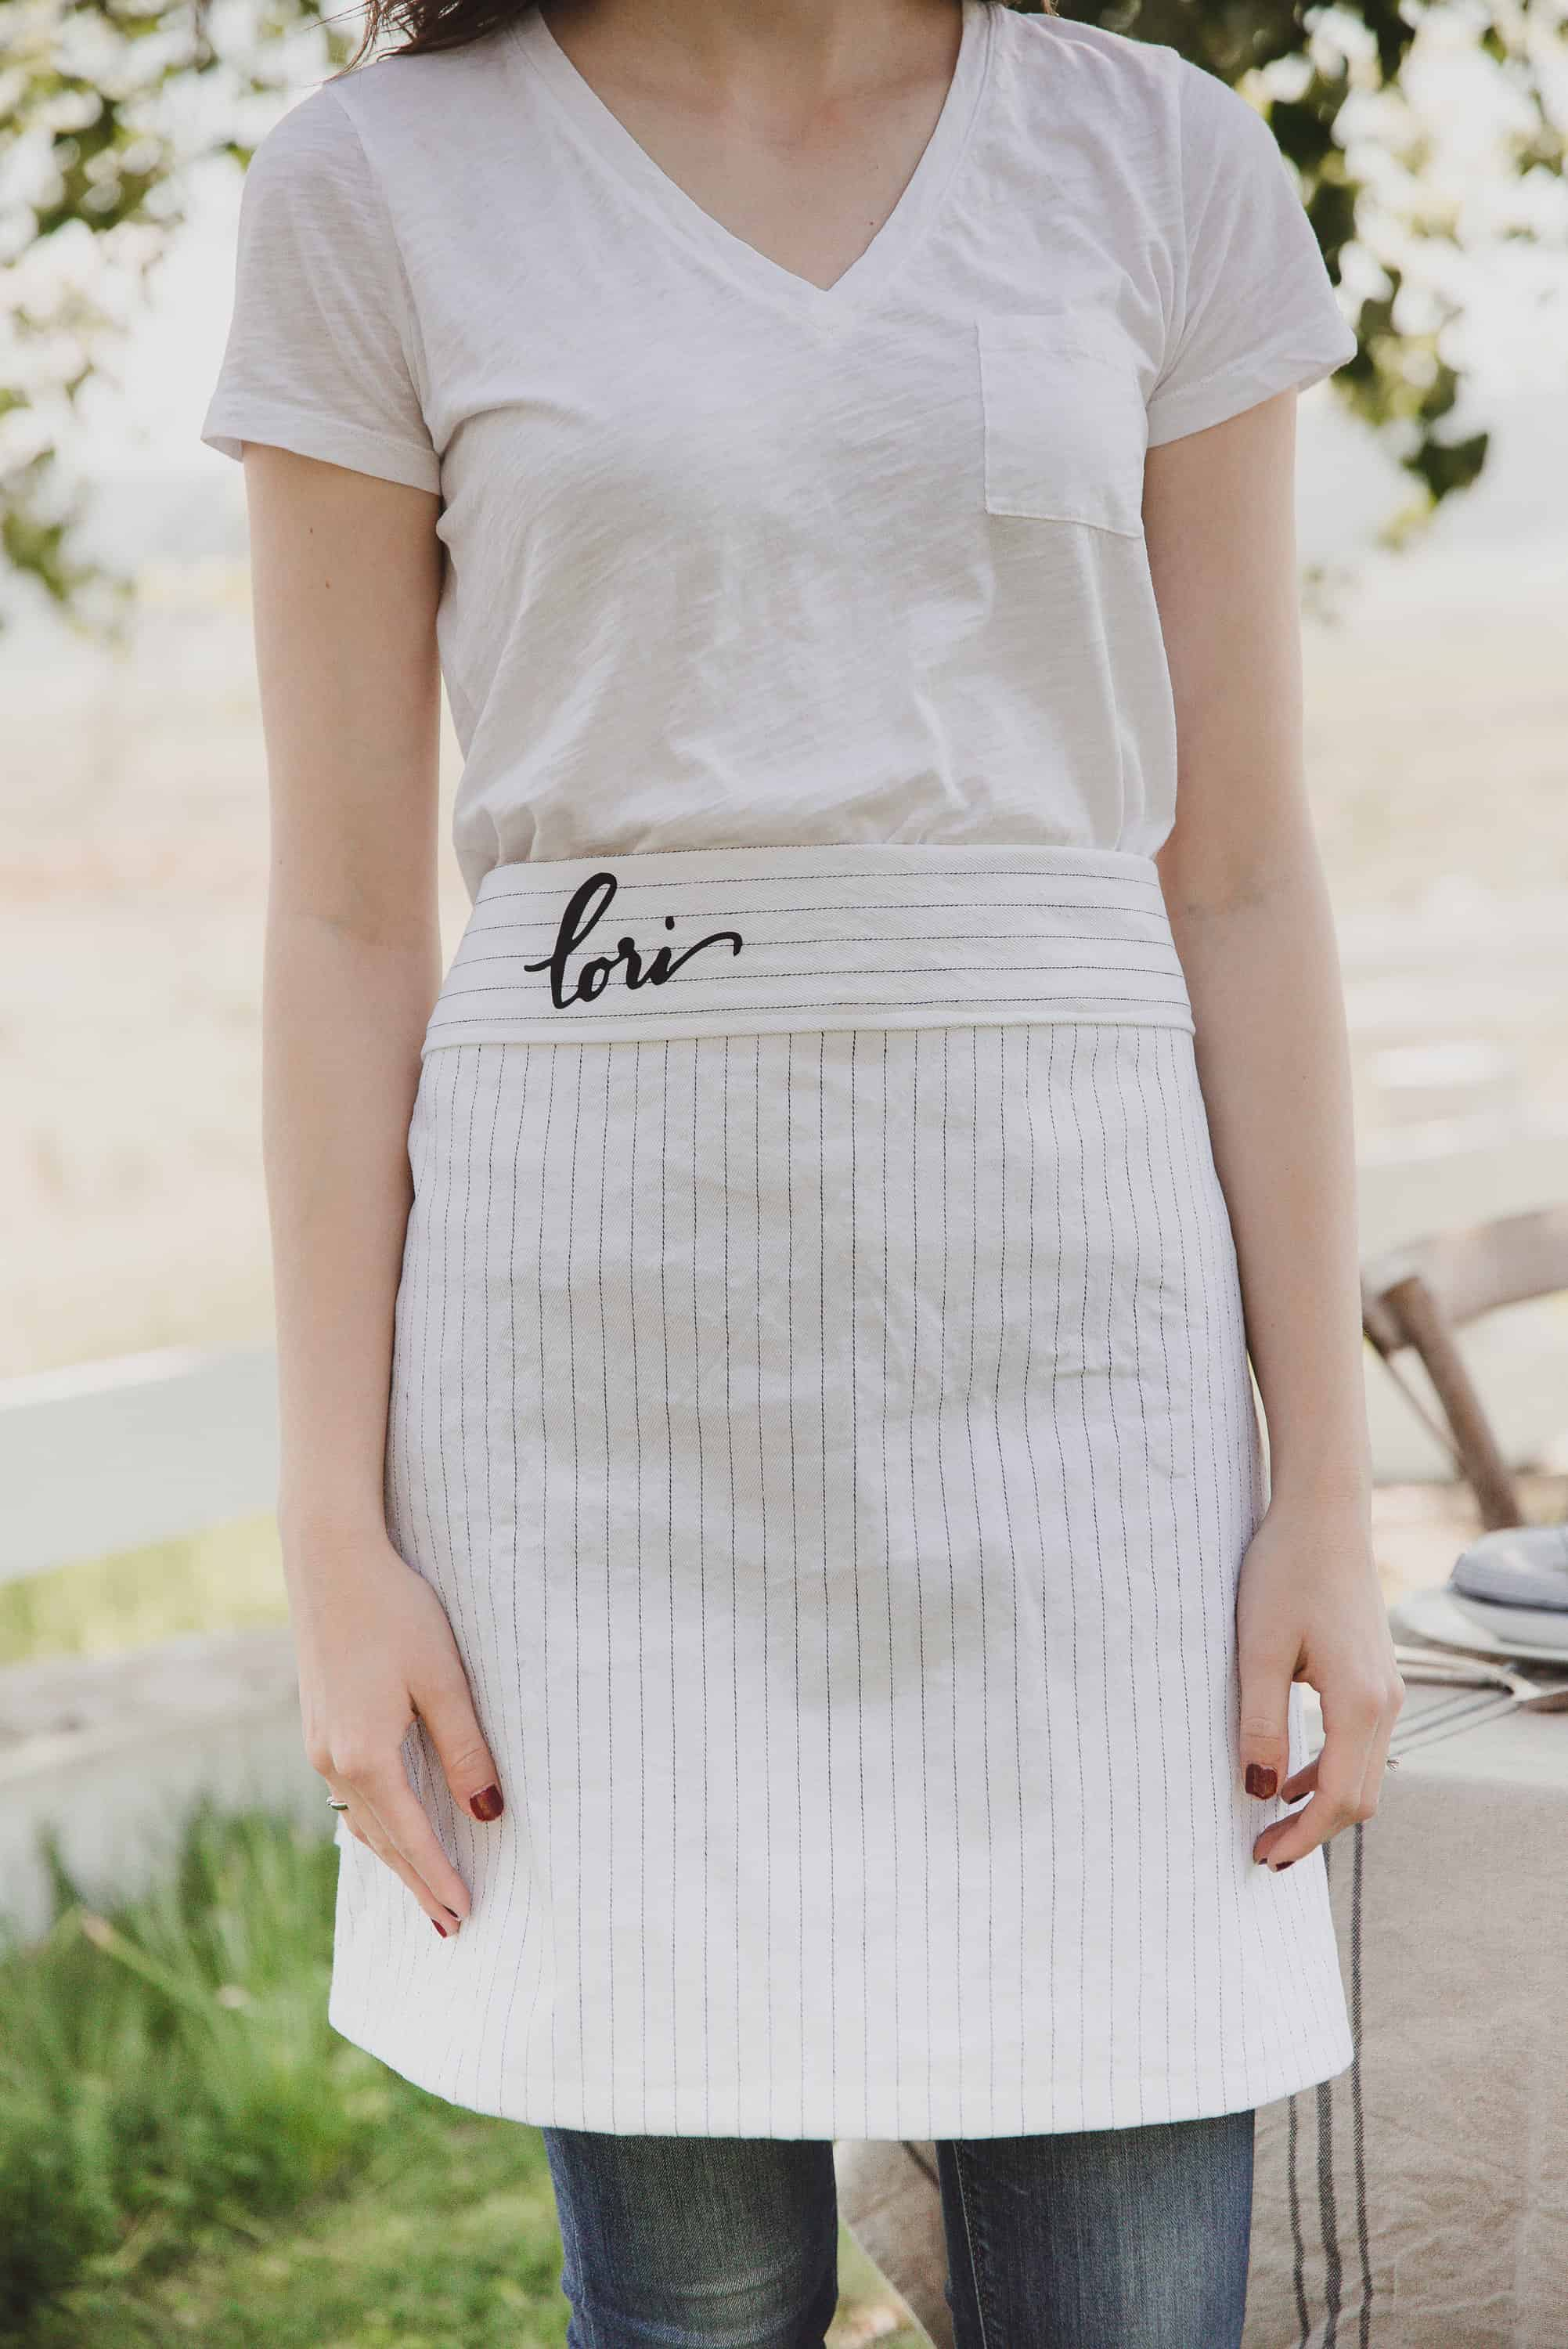 Learn how to make an easy half apron with this free apron pattern and tutorial using Brother! The personalization with HTV is the cherry on top of this darling project!